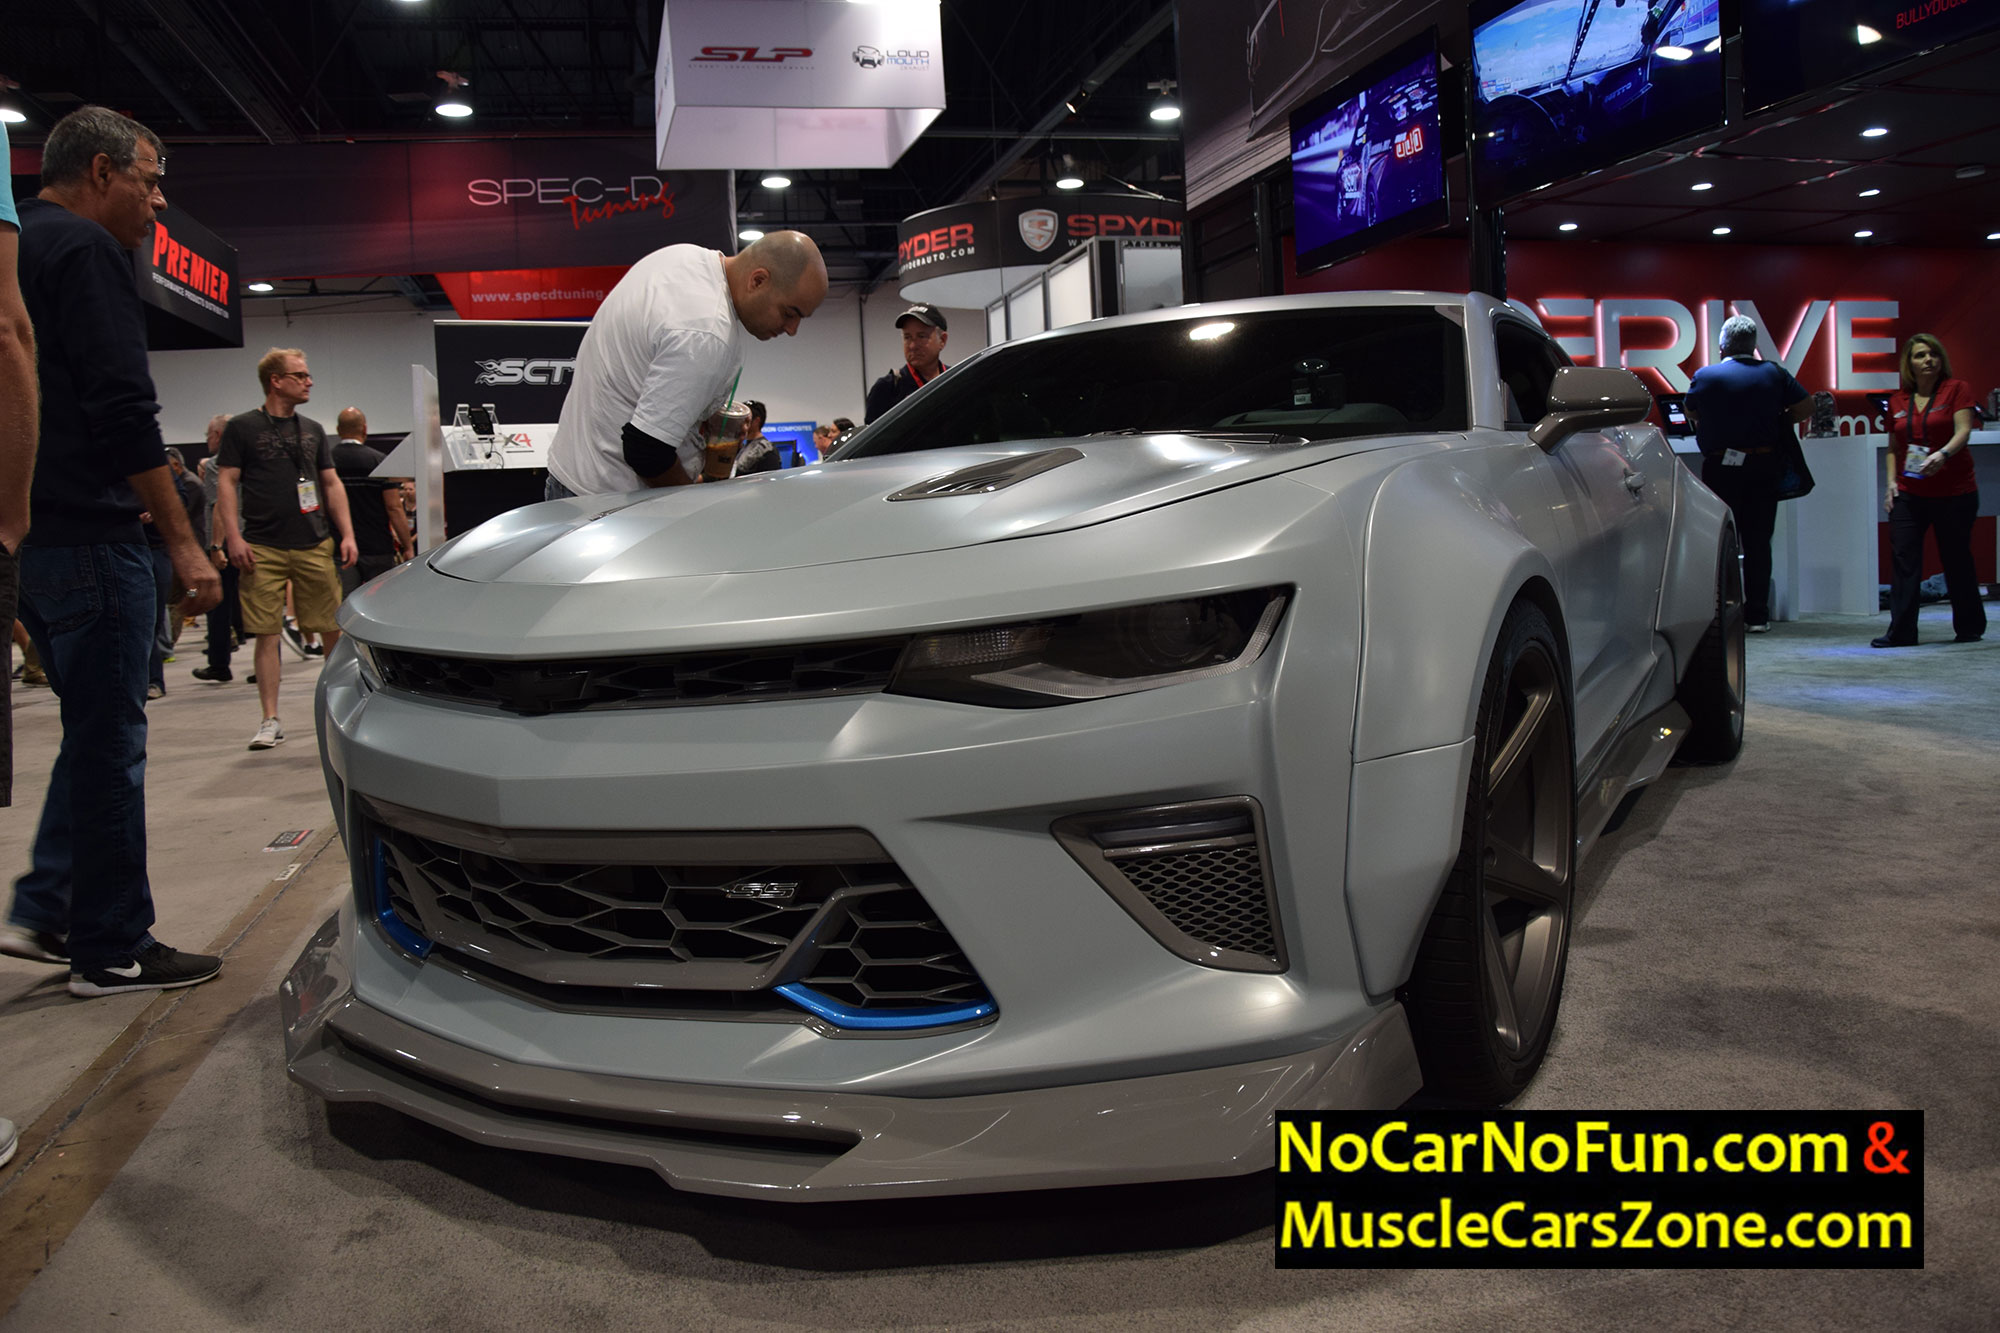 Musclecarszone Com Presents You The Very Best Rides Of The